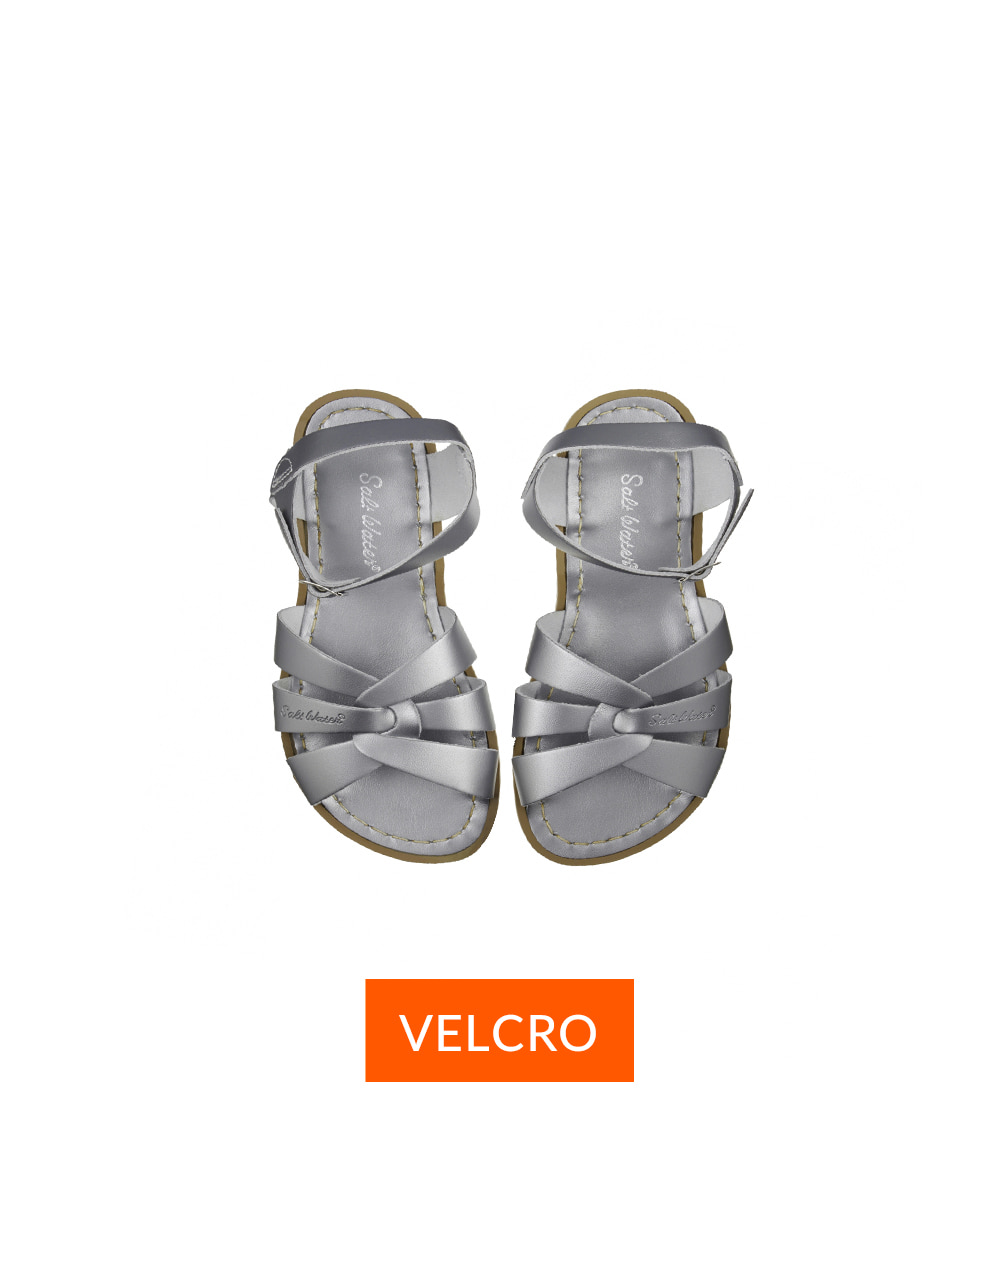 SALT-WATER SANDAL  CHILD VELCRO ORIGINAL PREMIUM  Pewter